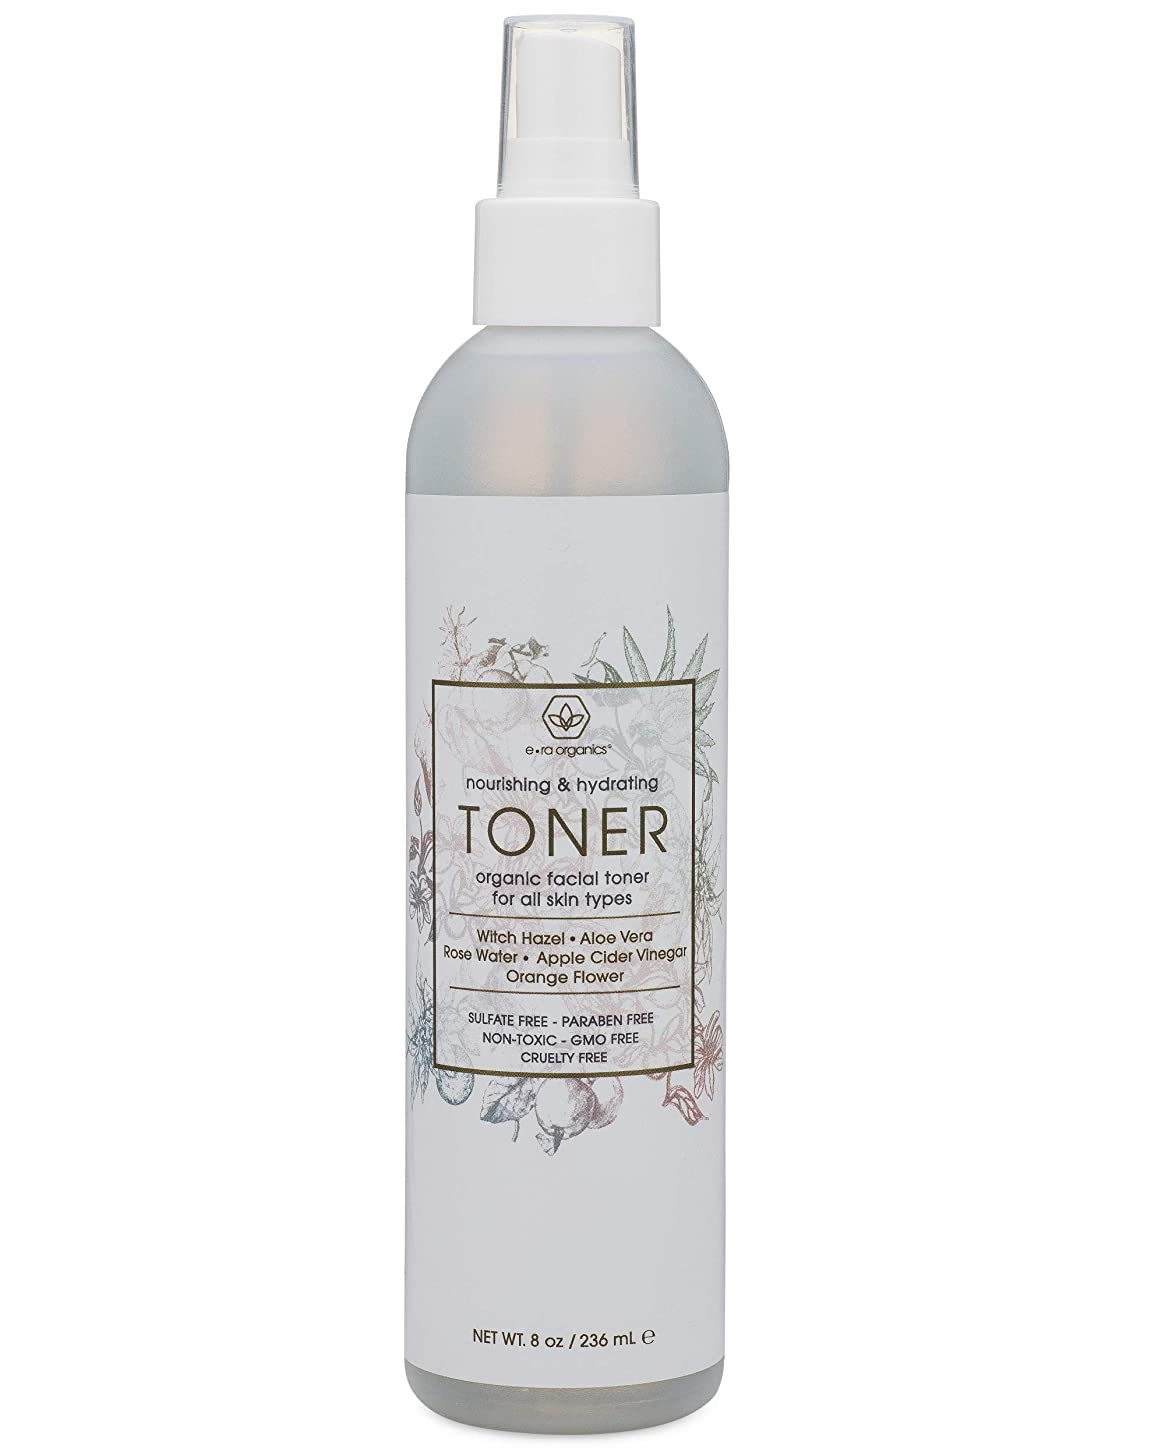 Facial Toner & Organic Face Mist - Extra Nourishing & Hydrating Natural Facial Mist with Witch Hazel, Apple Cider Vinegar, Rose Water for Dry, Oily, Acne Prone Skin Balance pH 8oz Era-Organics